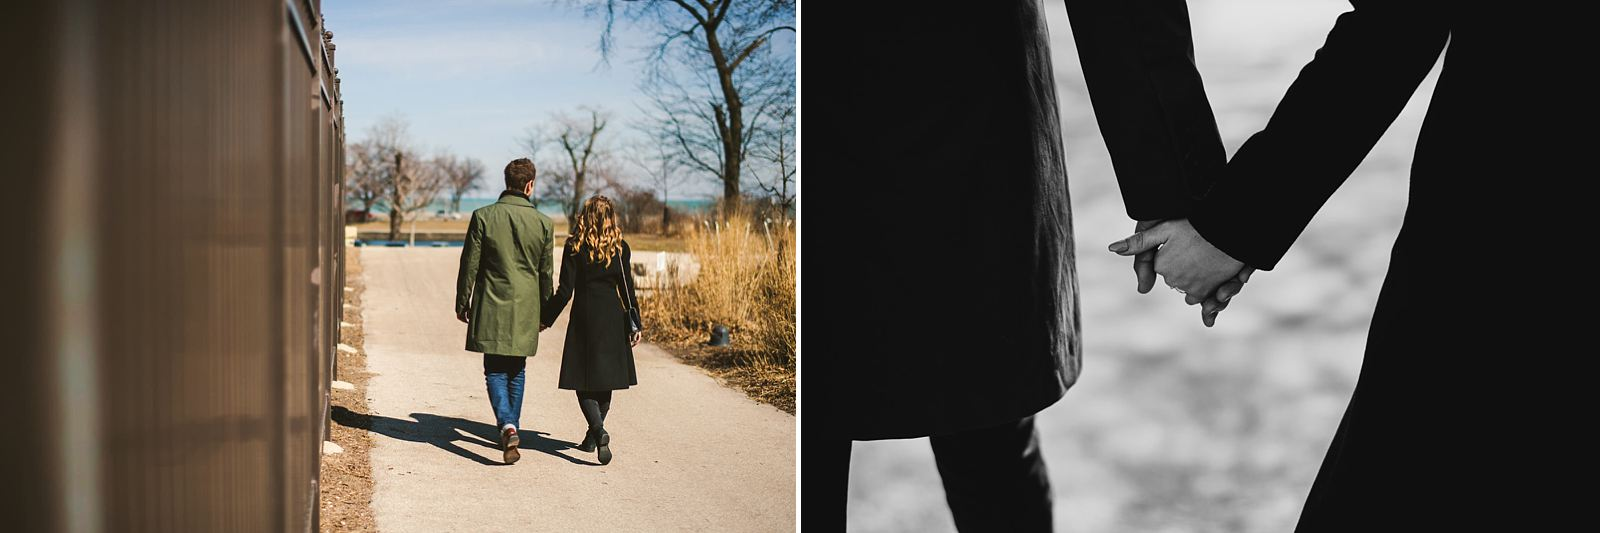 09 together - Chicago Marriage Proposal Photos // Justin + Basia